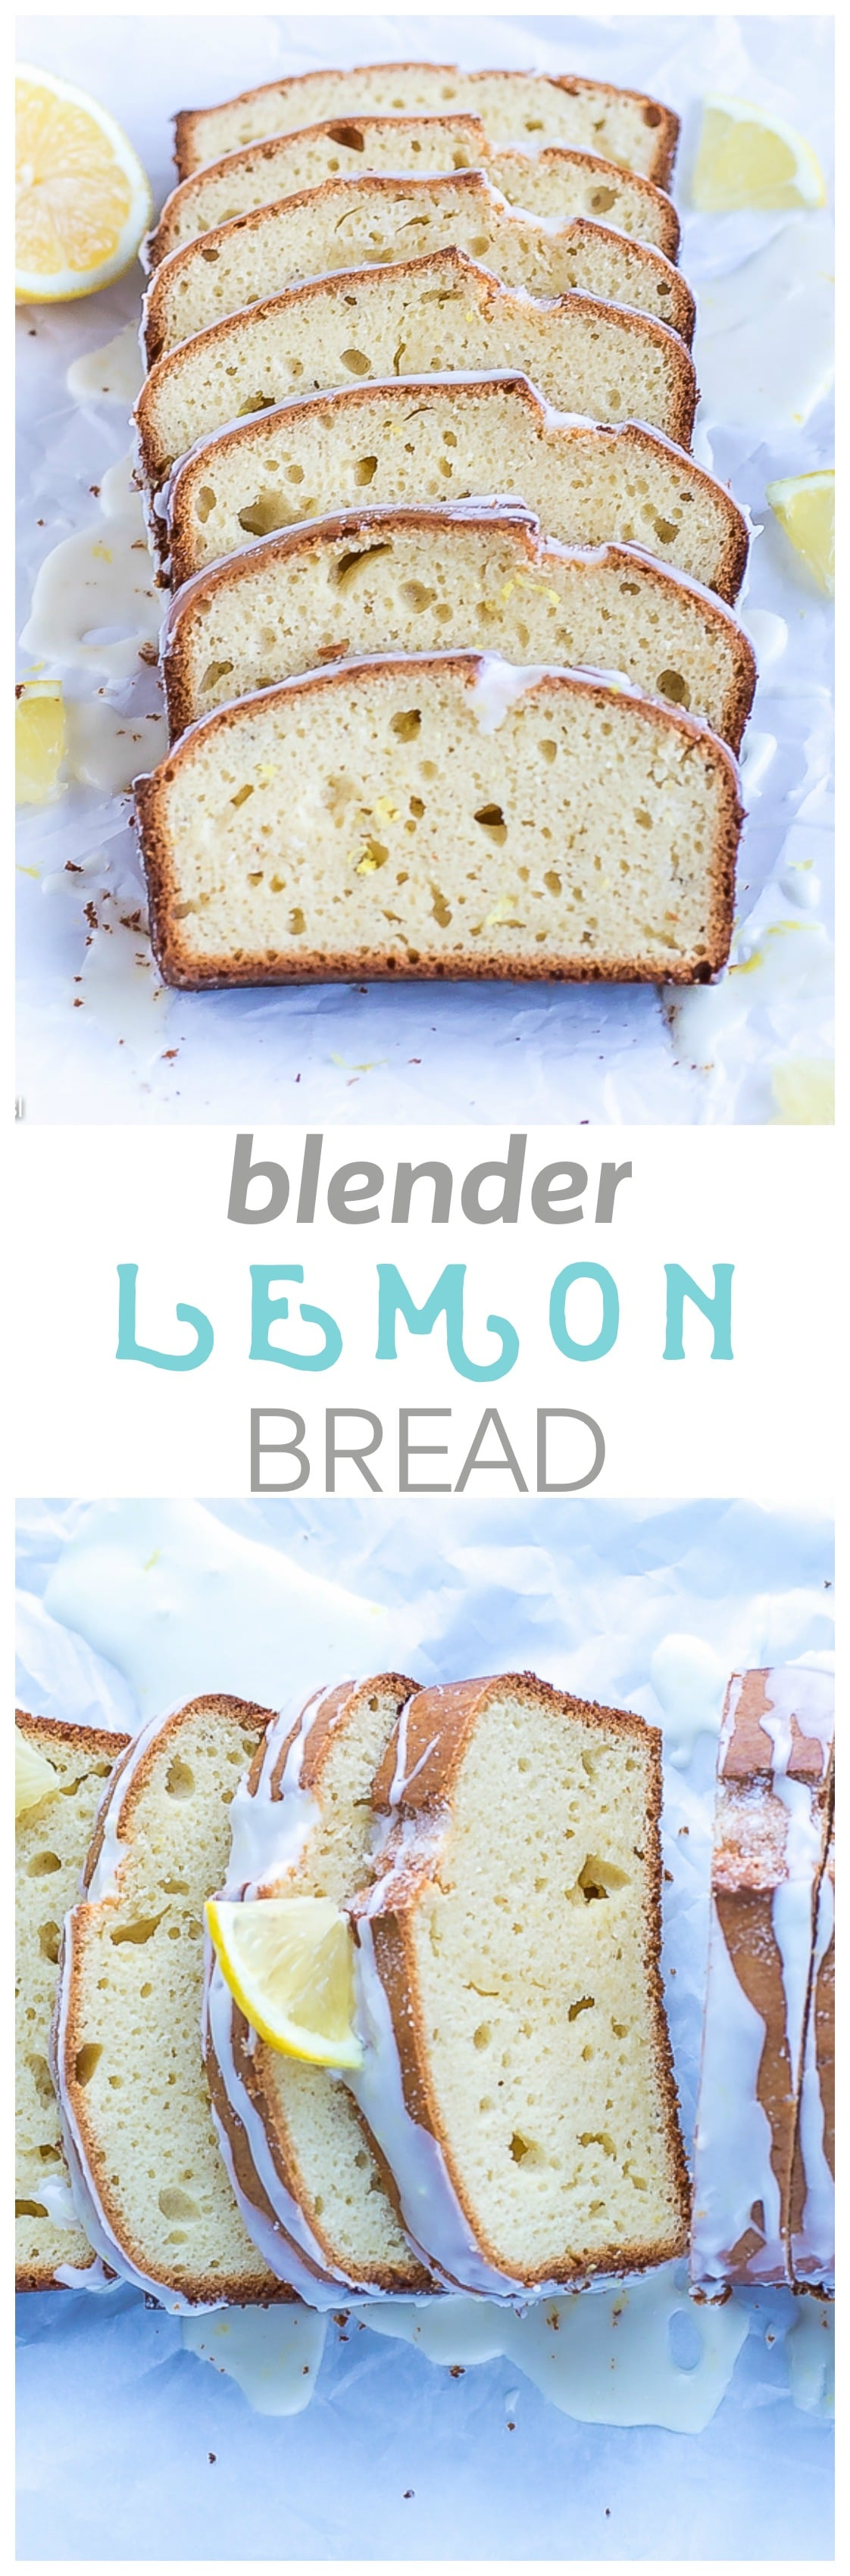 Blender Lemon Bread Recipe - fluffy and flavorful, this sweet lemon bread is extremely easy to make. The sweet glaze on top is just the perfect finish to this delicious goodness!